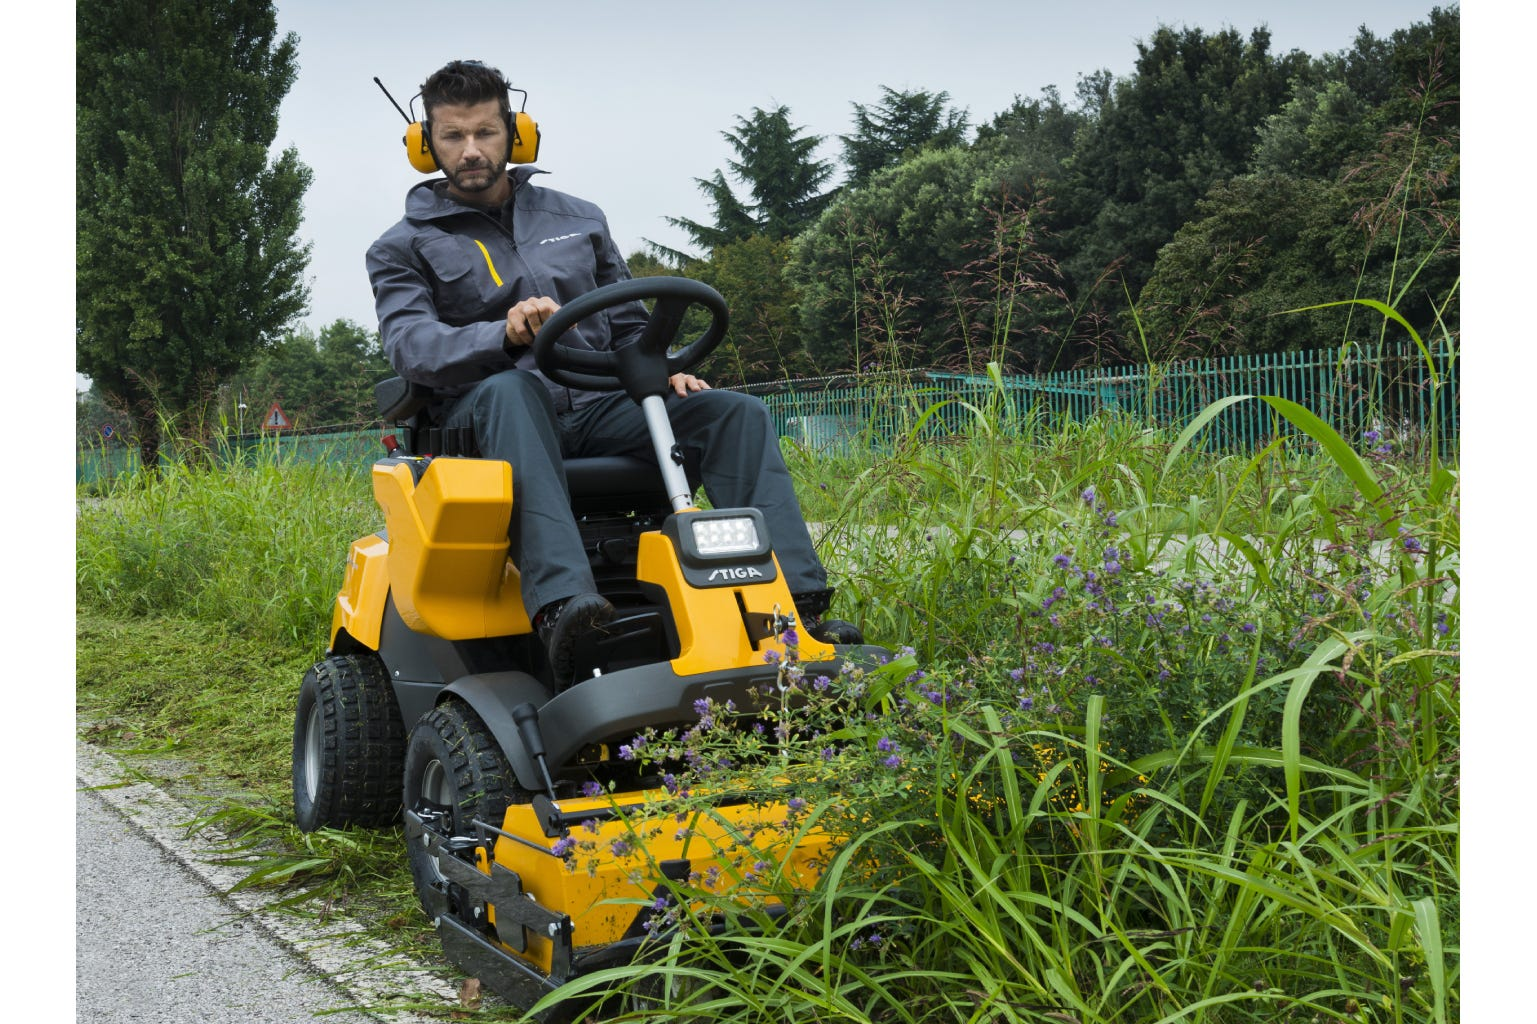 The lawn aerator for STIGA Park front mowers will keep the lawn healthy and beautiful